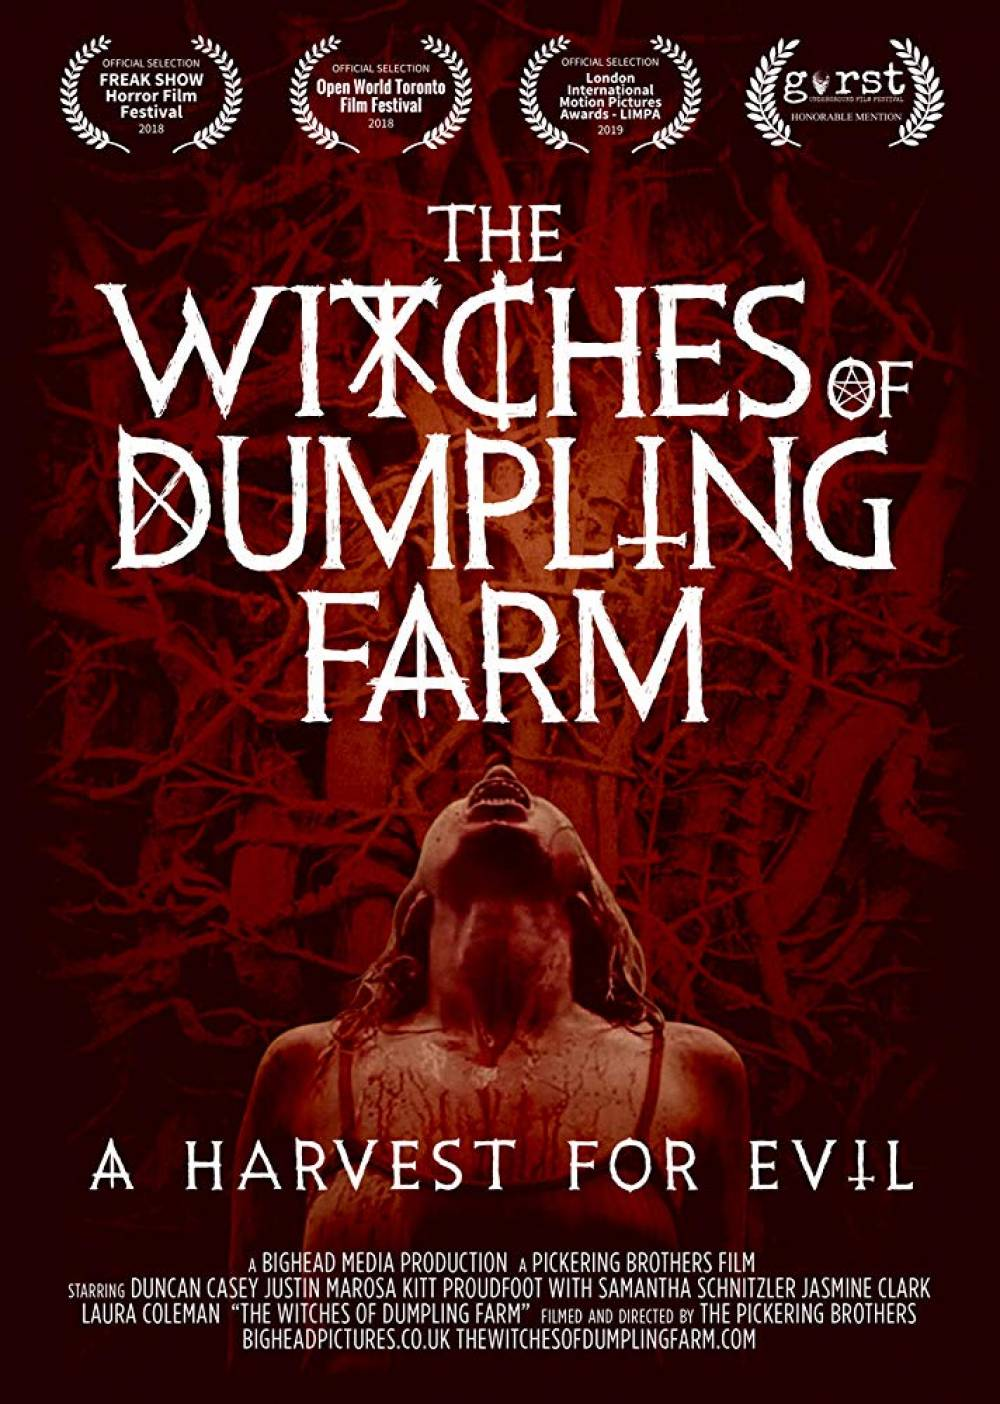 Wicked Witches (AKA: The Witches of Dumpling Farm)